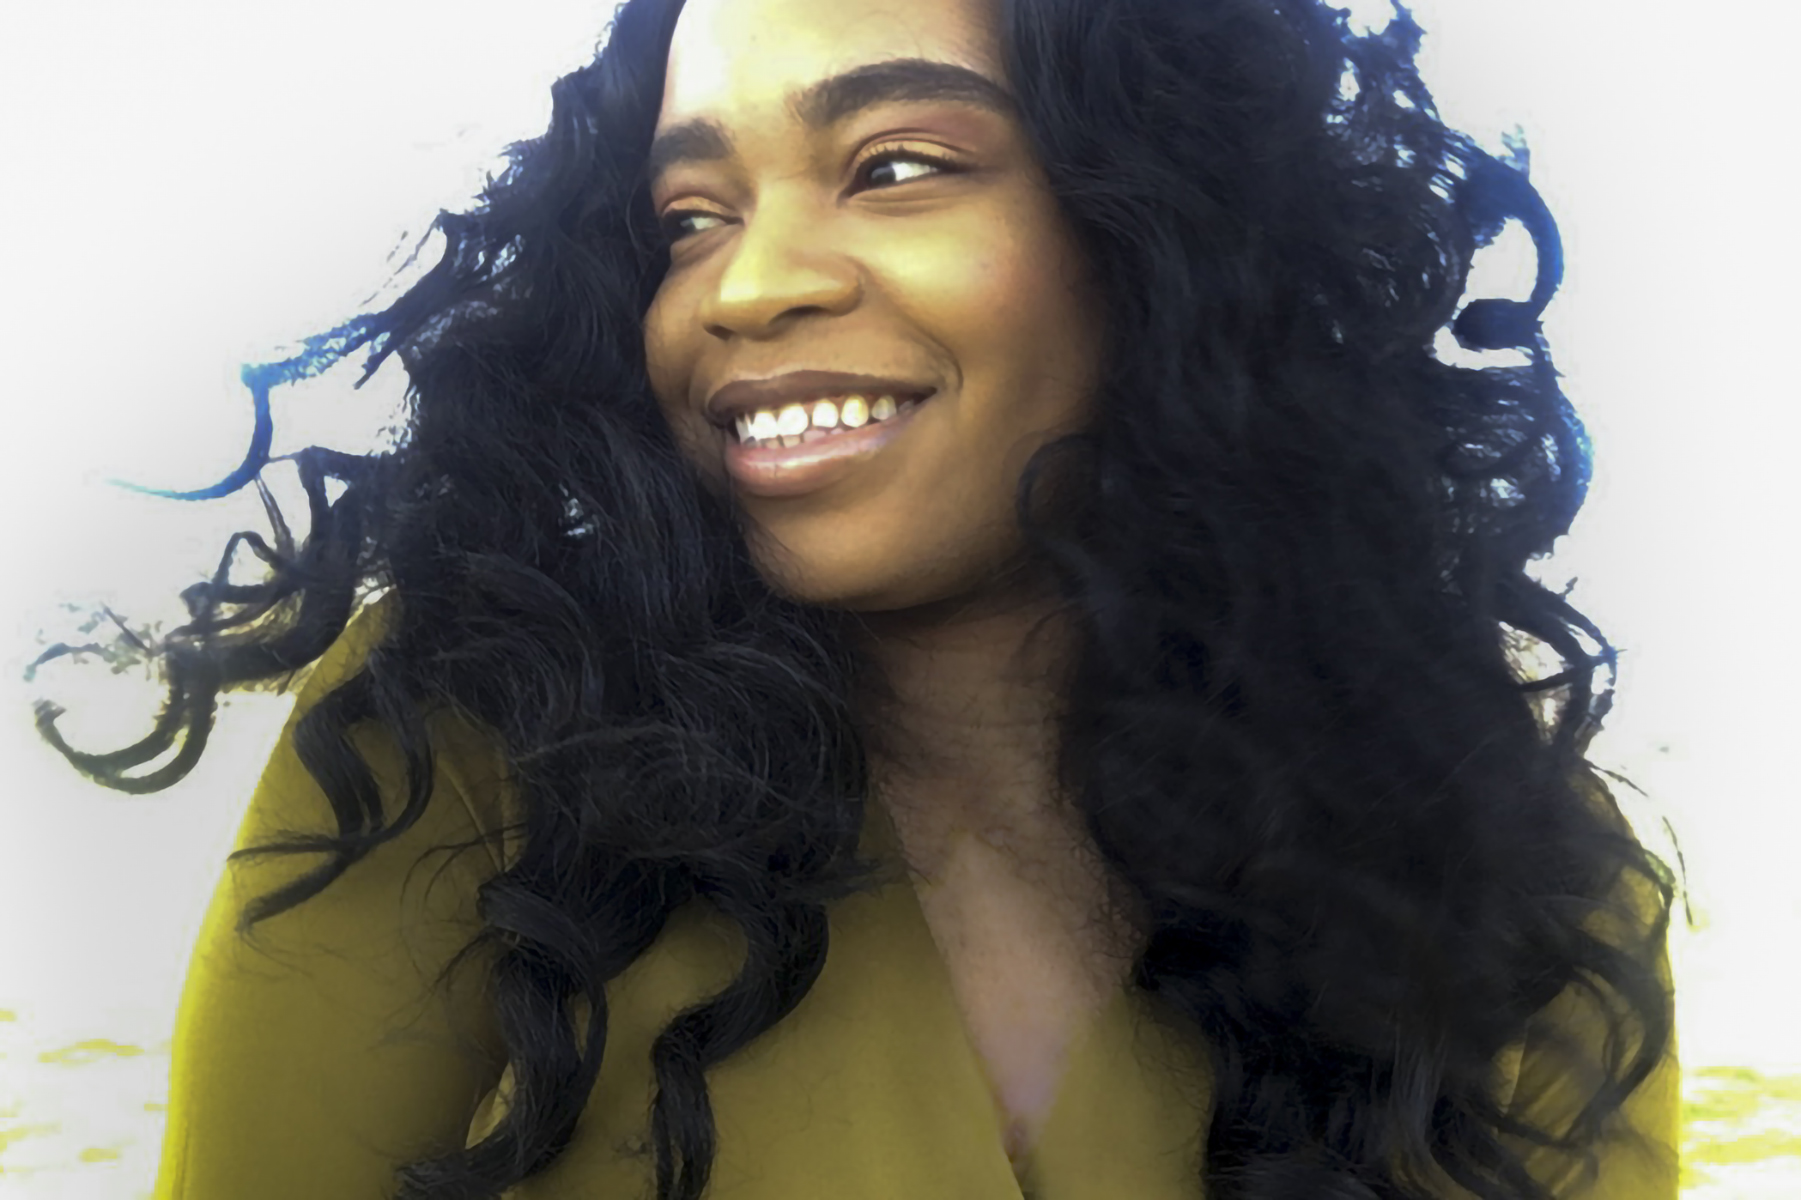 Alexandria Onuoha '20, senior class Commencement speaker, a psychology and dance double major from Malden, Mass., poses for a FaceTime portrait in a park near her home.